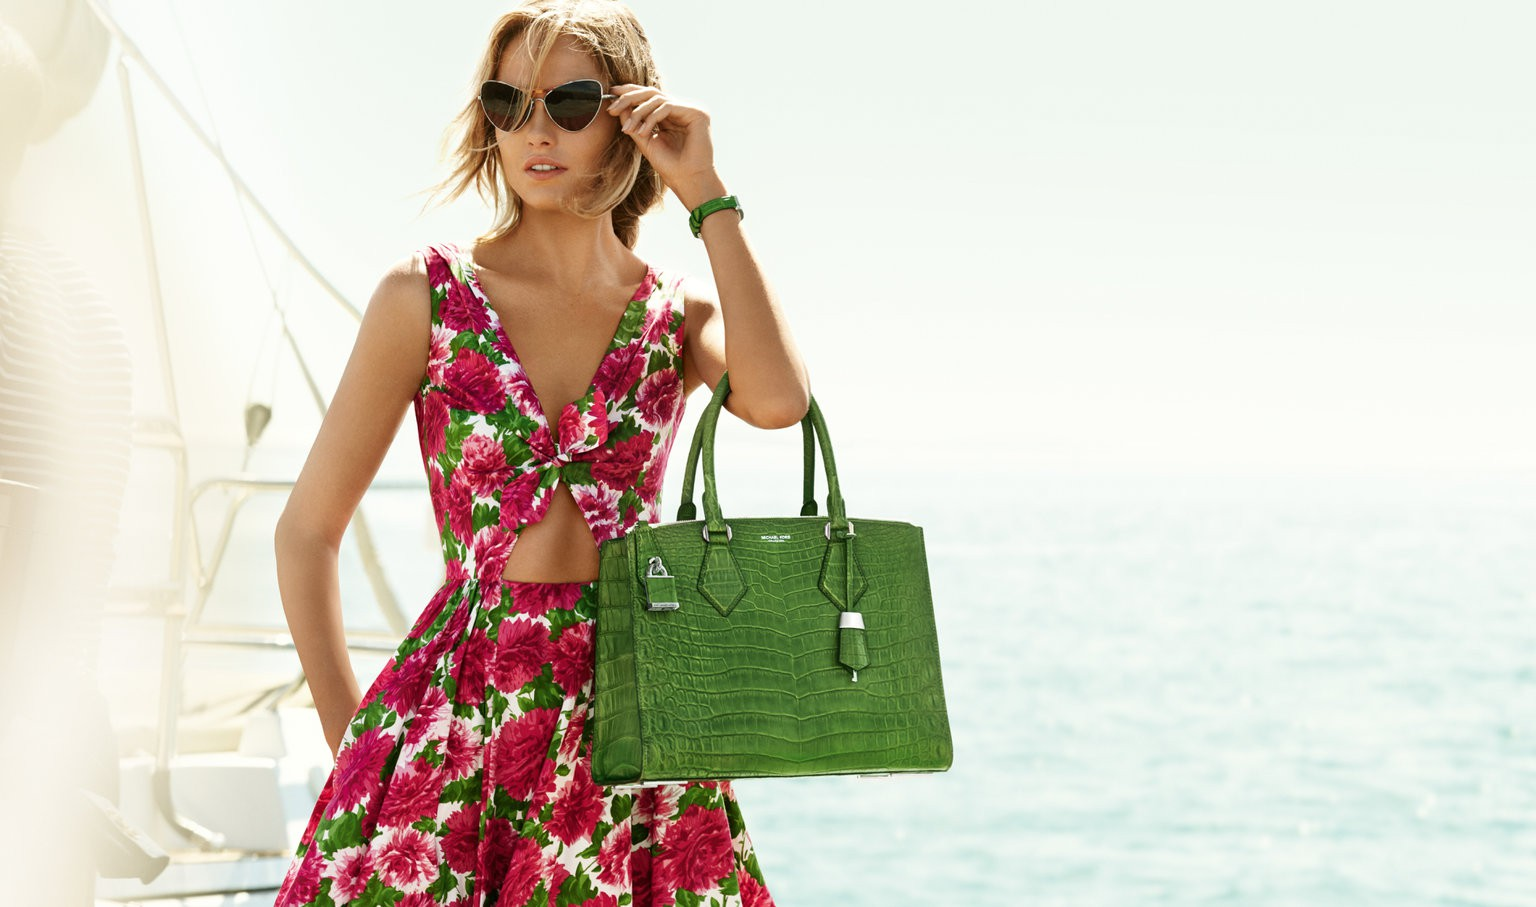 72ea200bb277 Buy Michael Kors Products in Malaysia August 2019